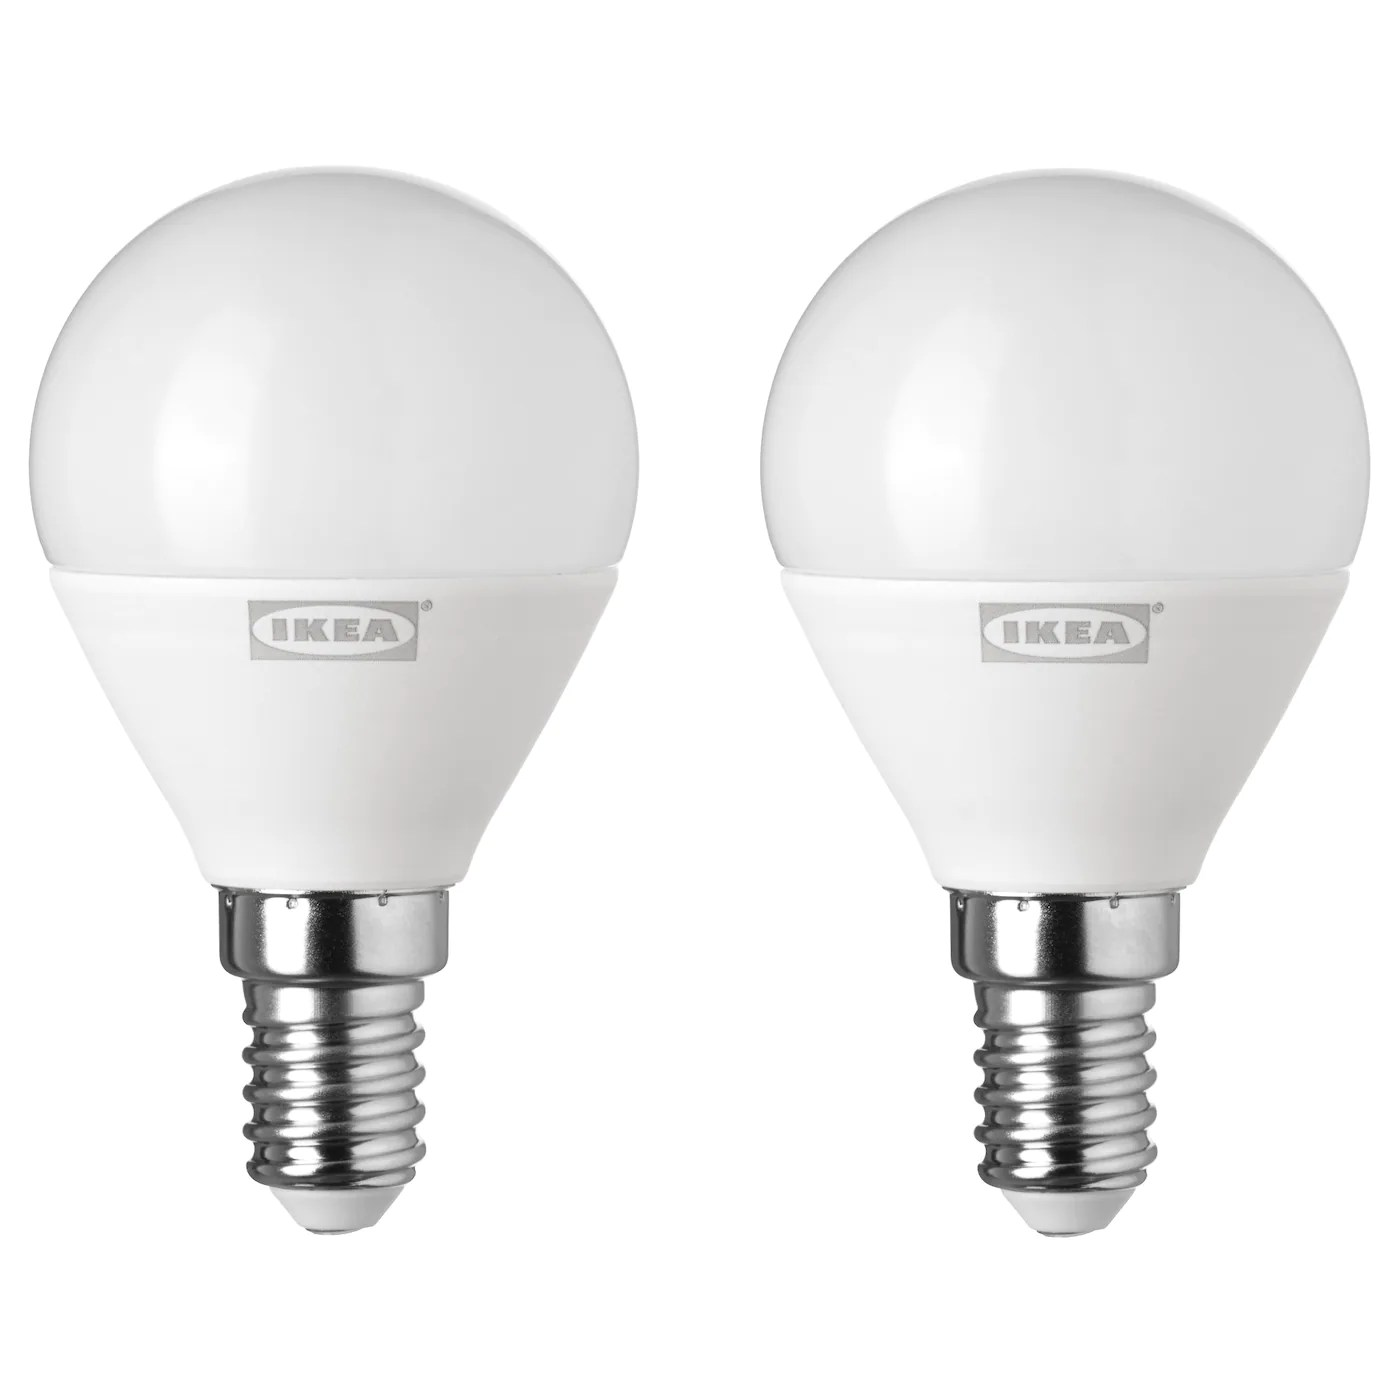 Led Light Bulbs Ikea